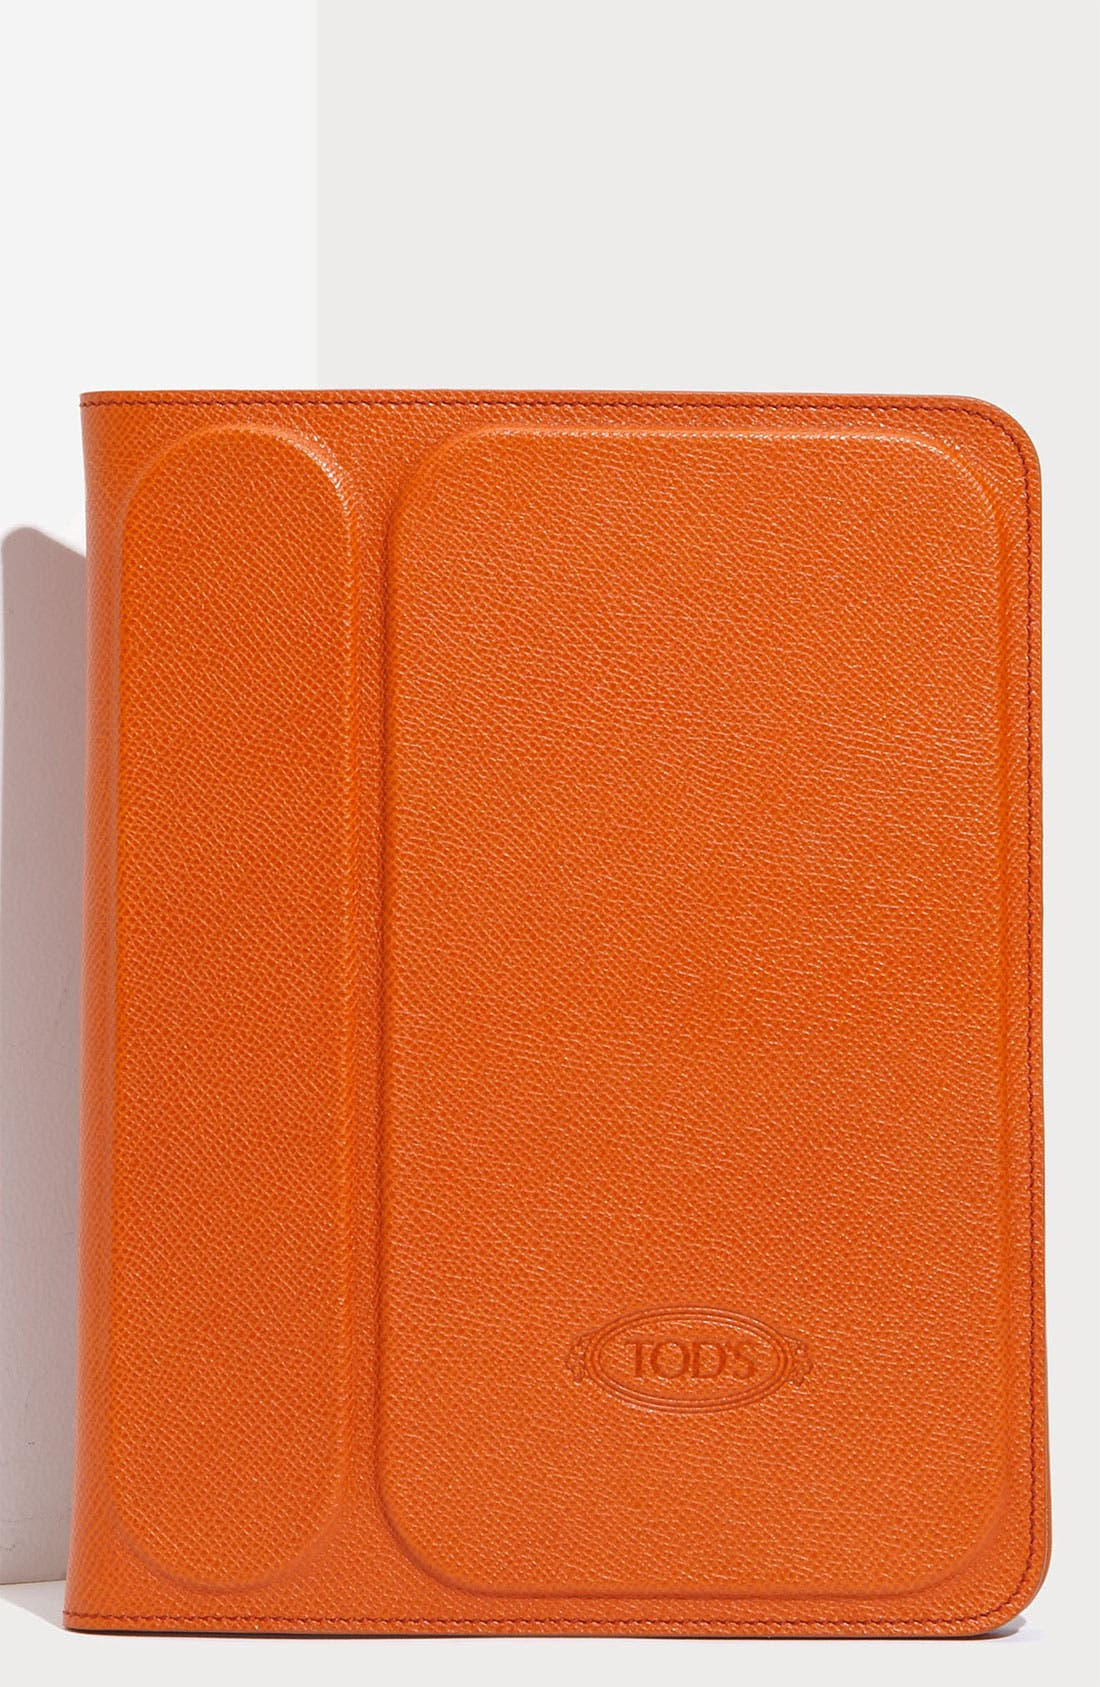 Alternate Image 1 Selected - Tod's Leather iPad 2 Case